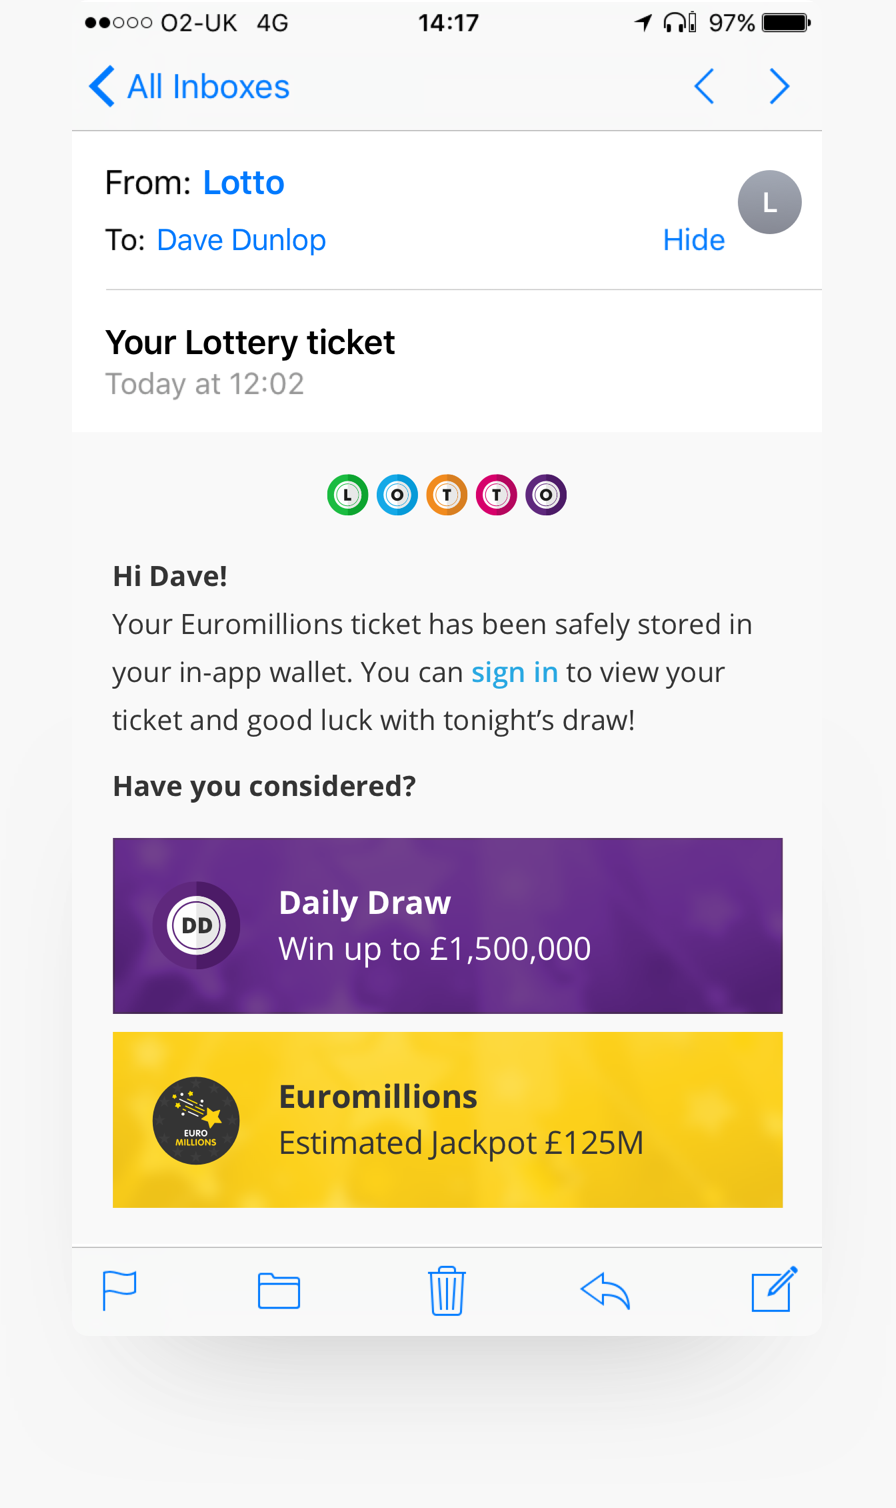 An opportunity for cross sell and upsell with your digital lottery design